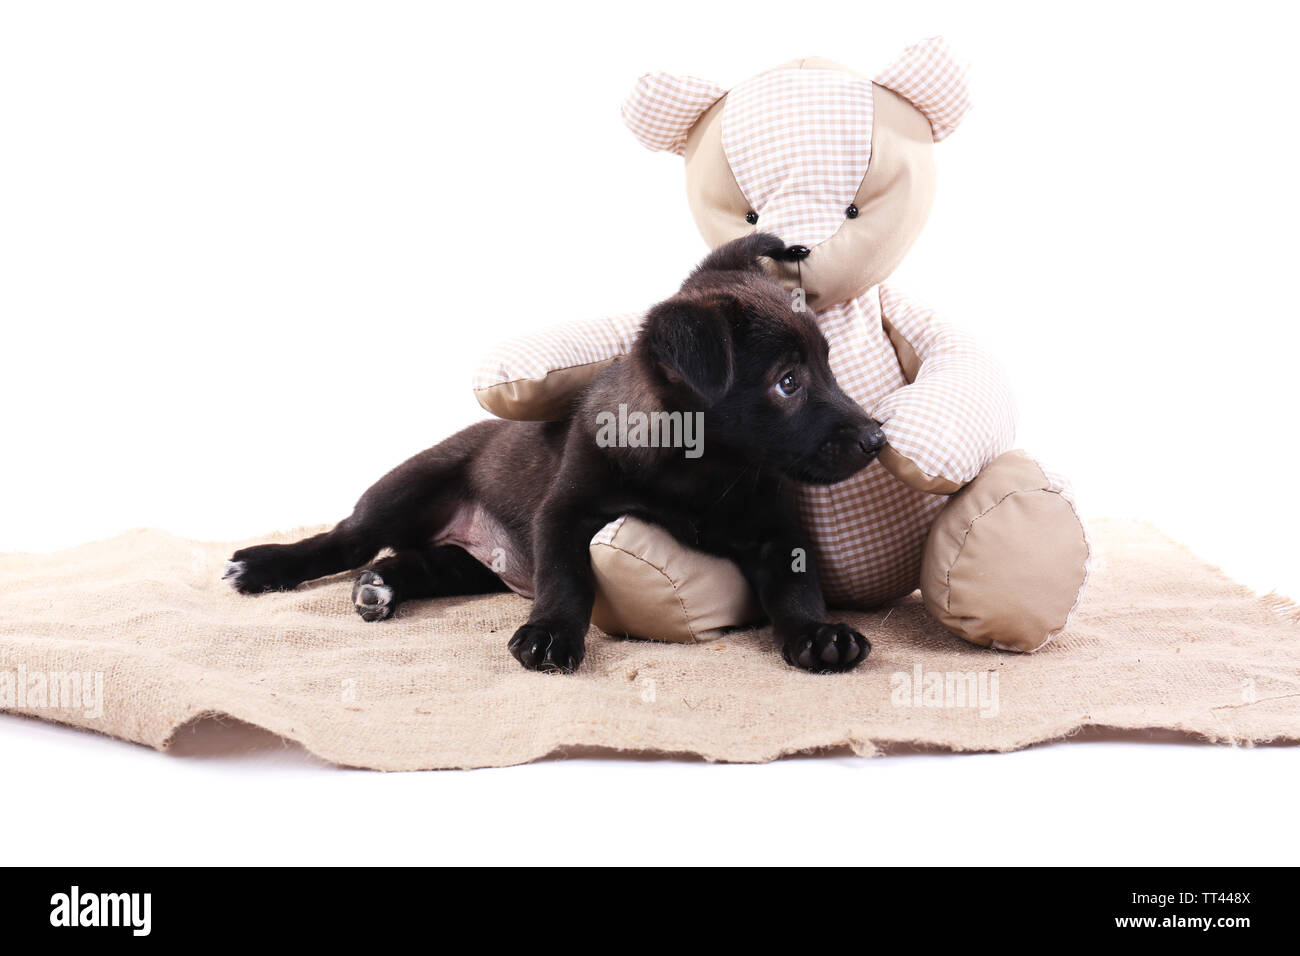 Black puppy playing with toy bear on a piece of sacking isolated on white - Stock Image